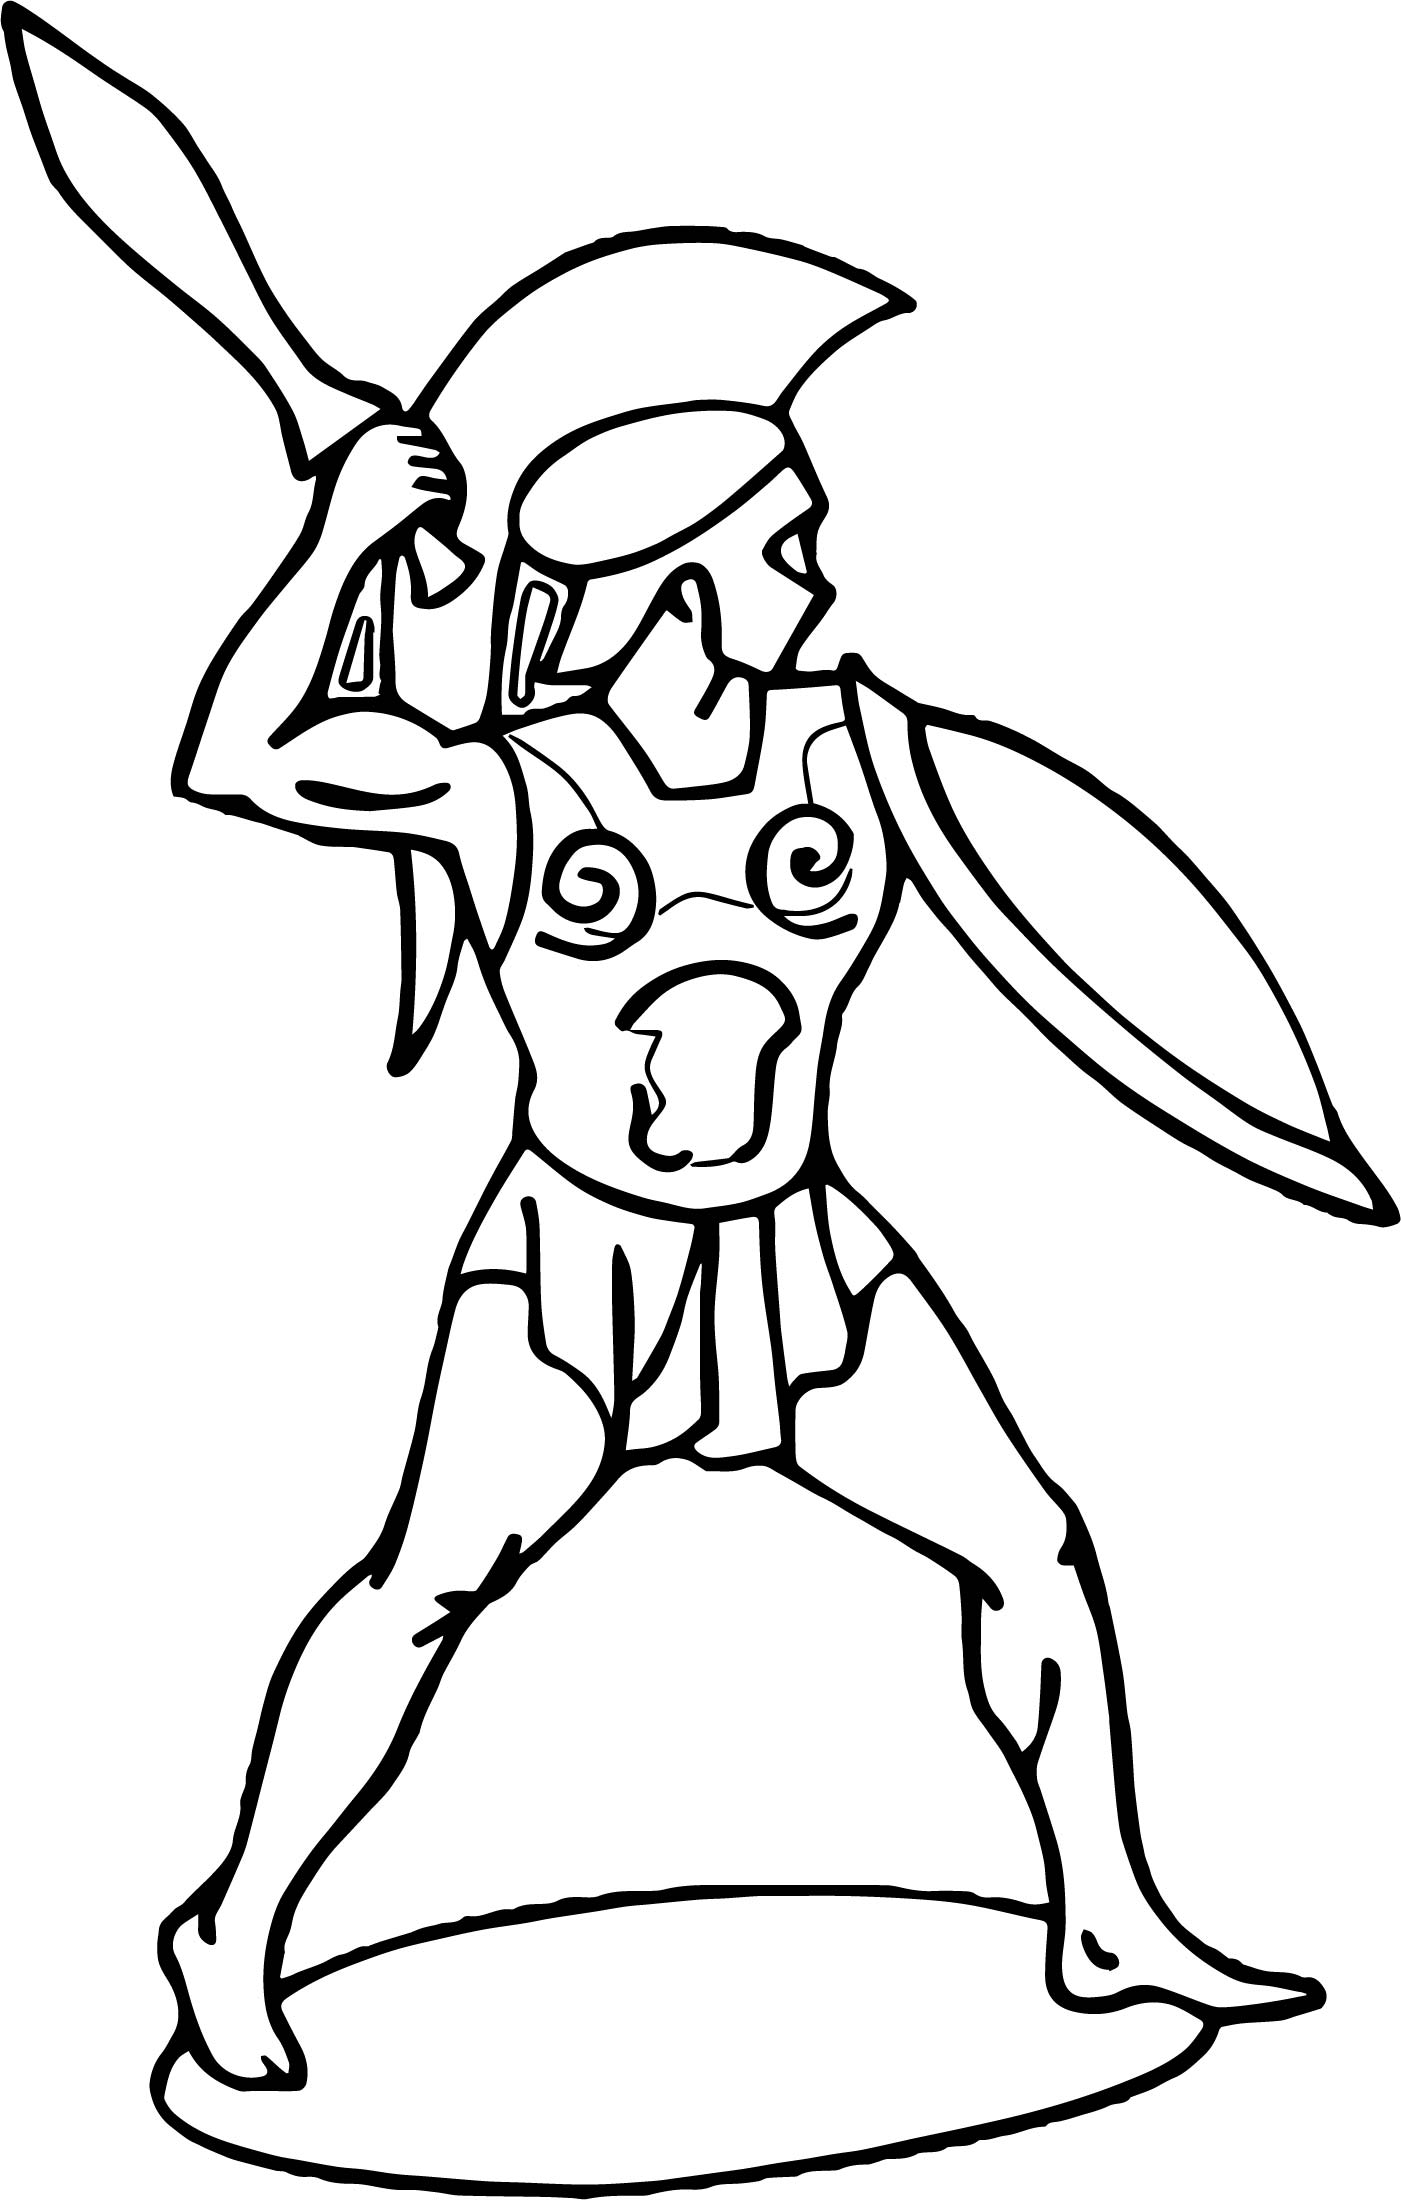 roman coloring pages - photo#16